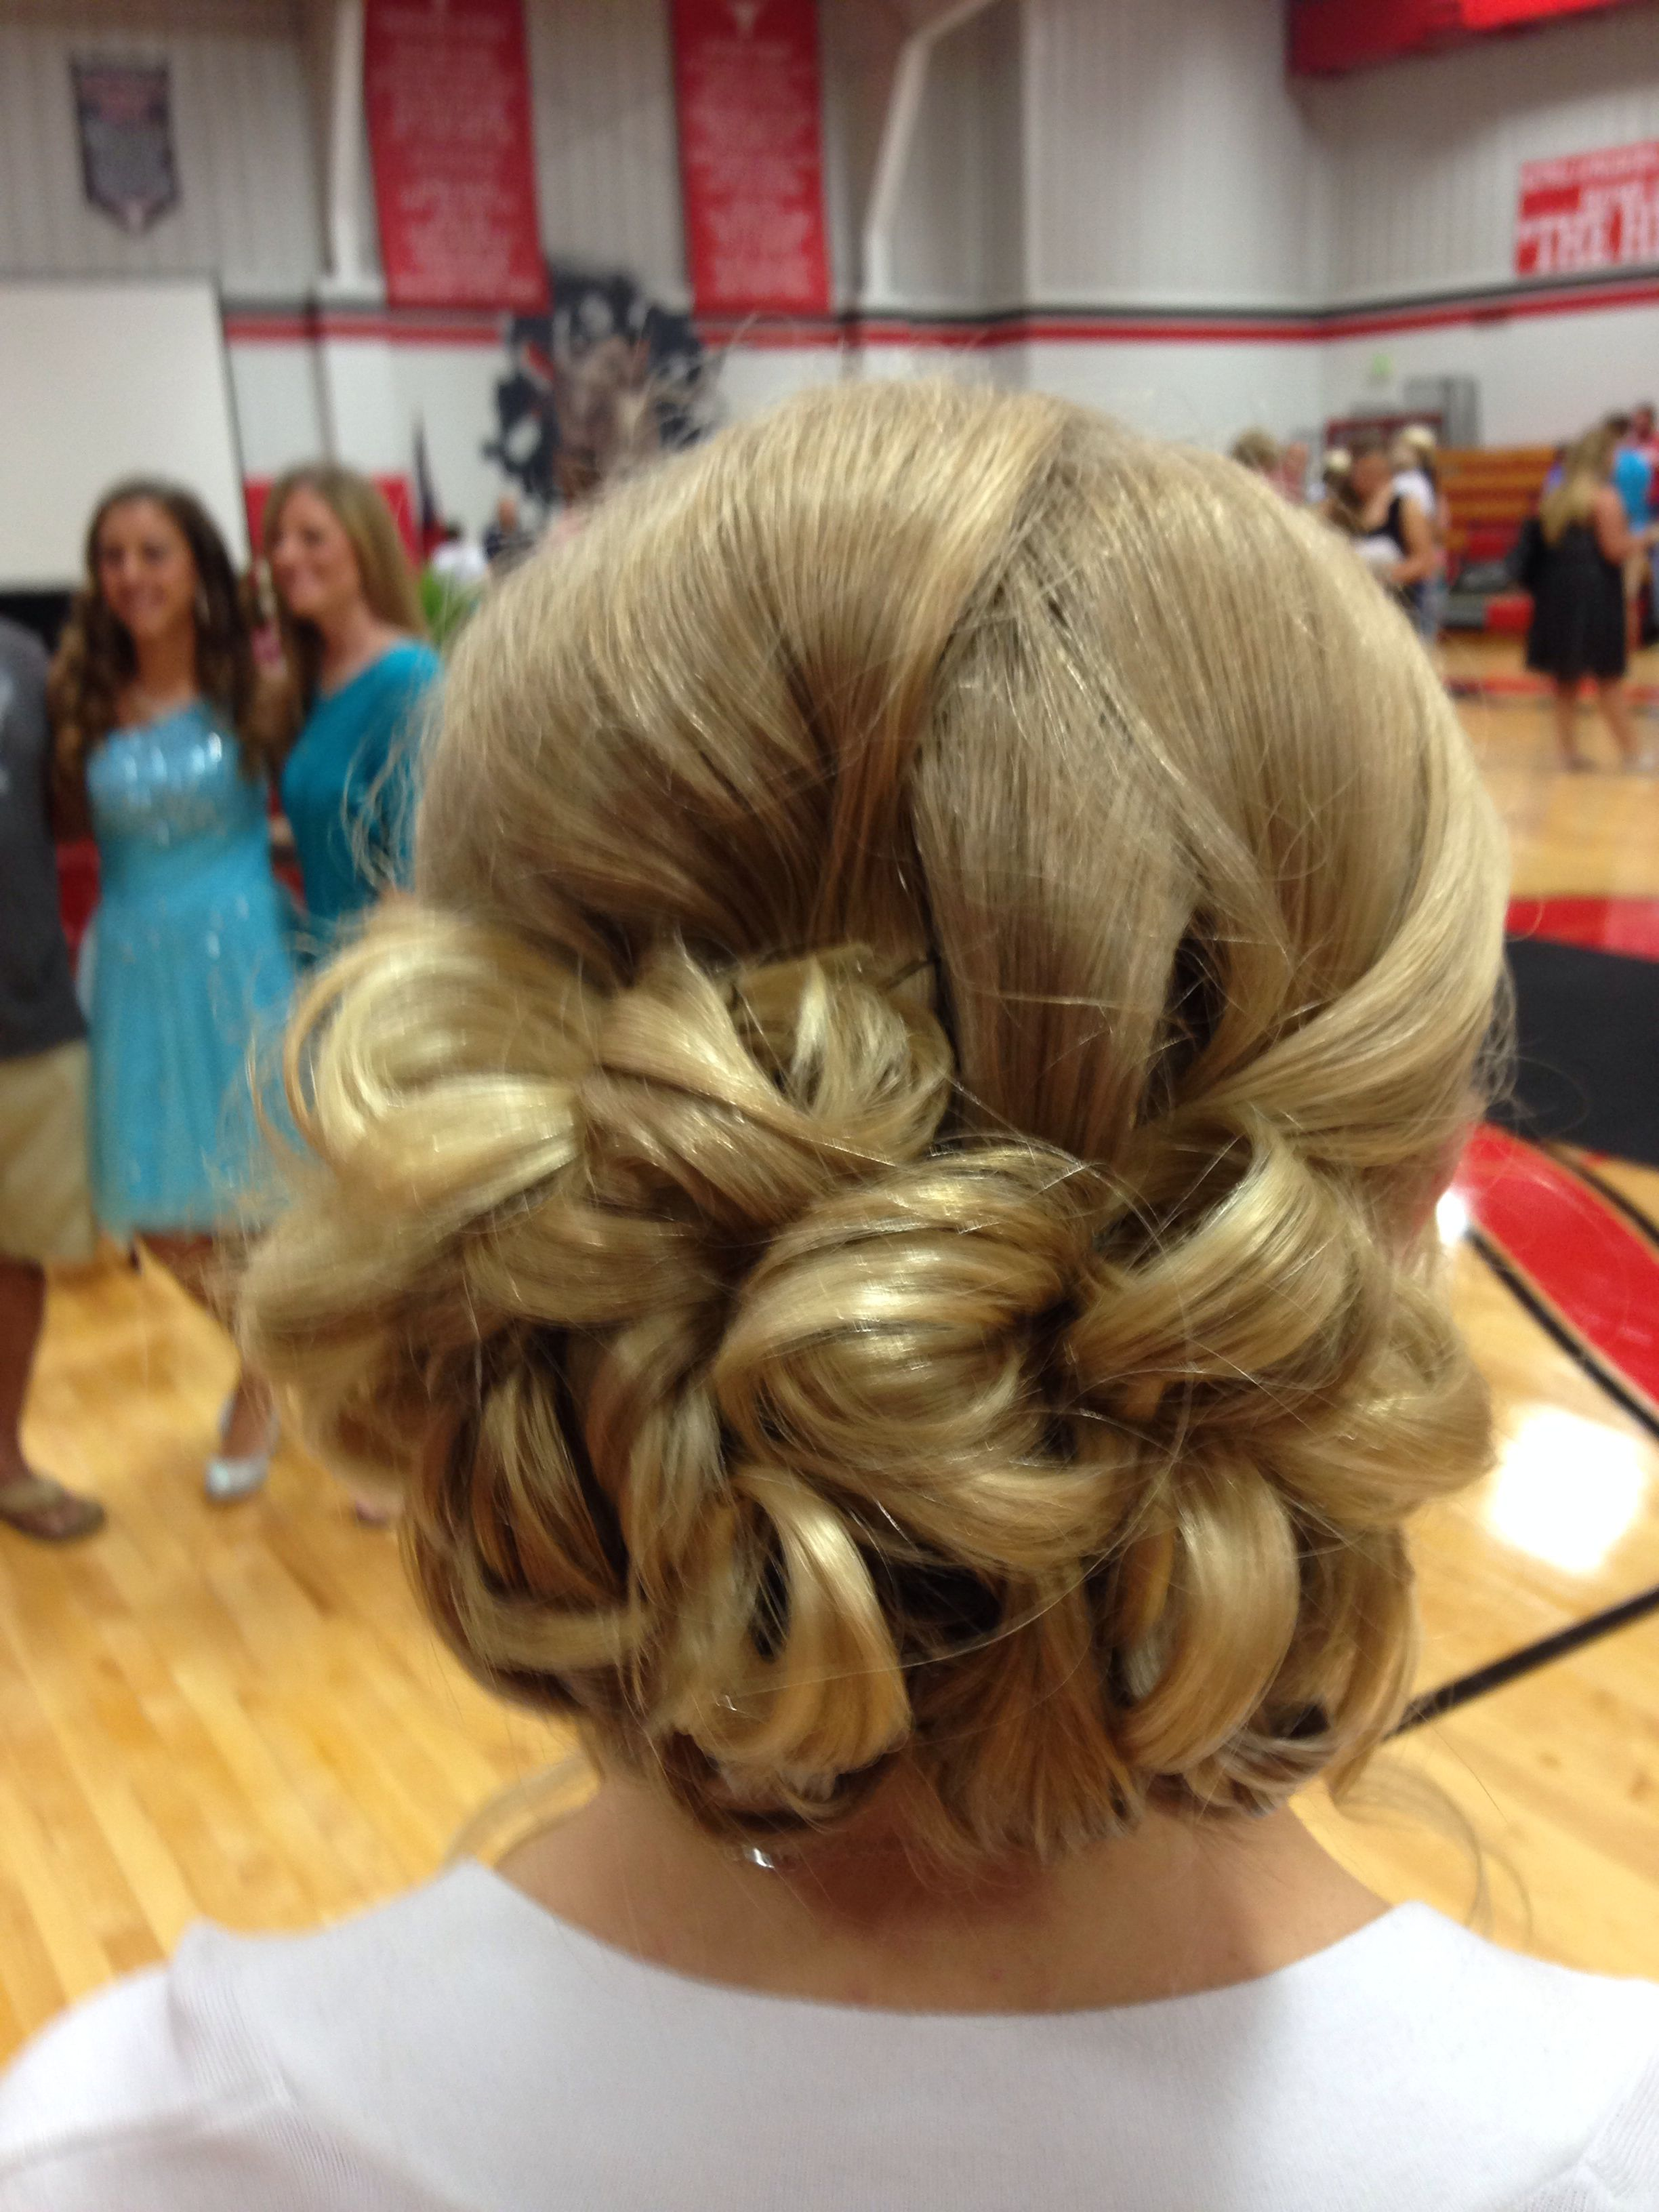 updo for my 8th grade graduation done by cherie hudson- the